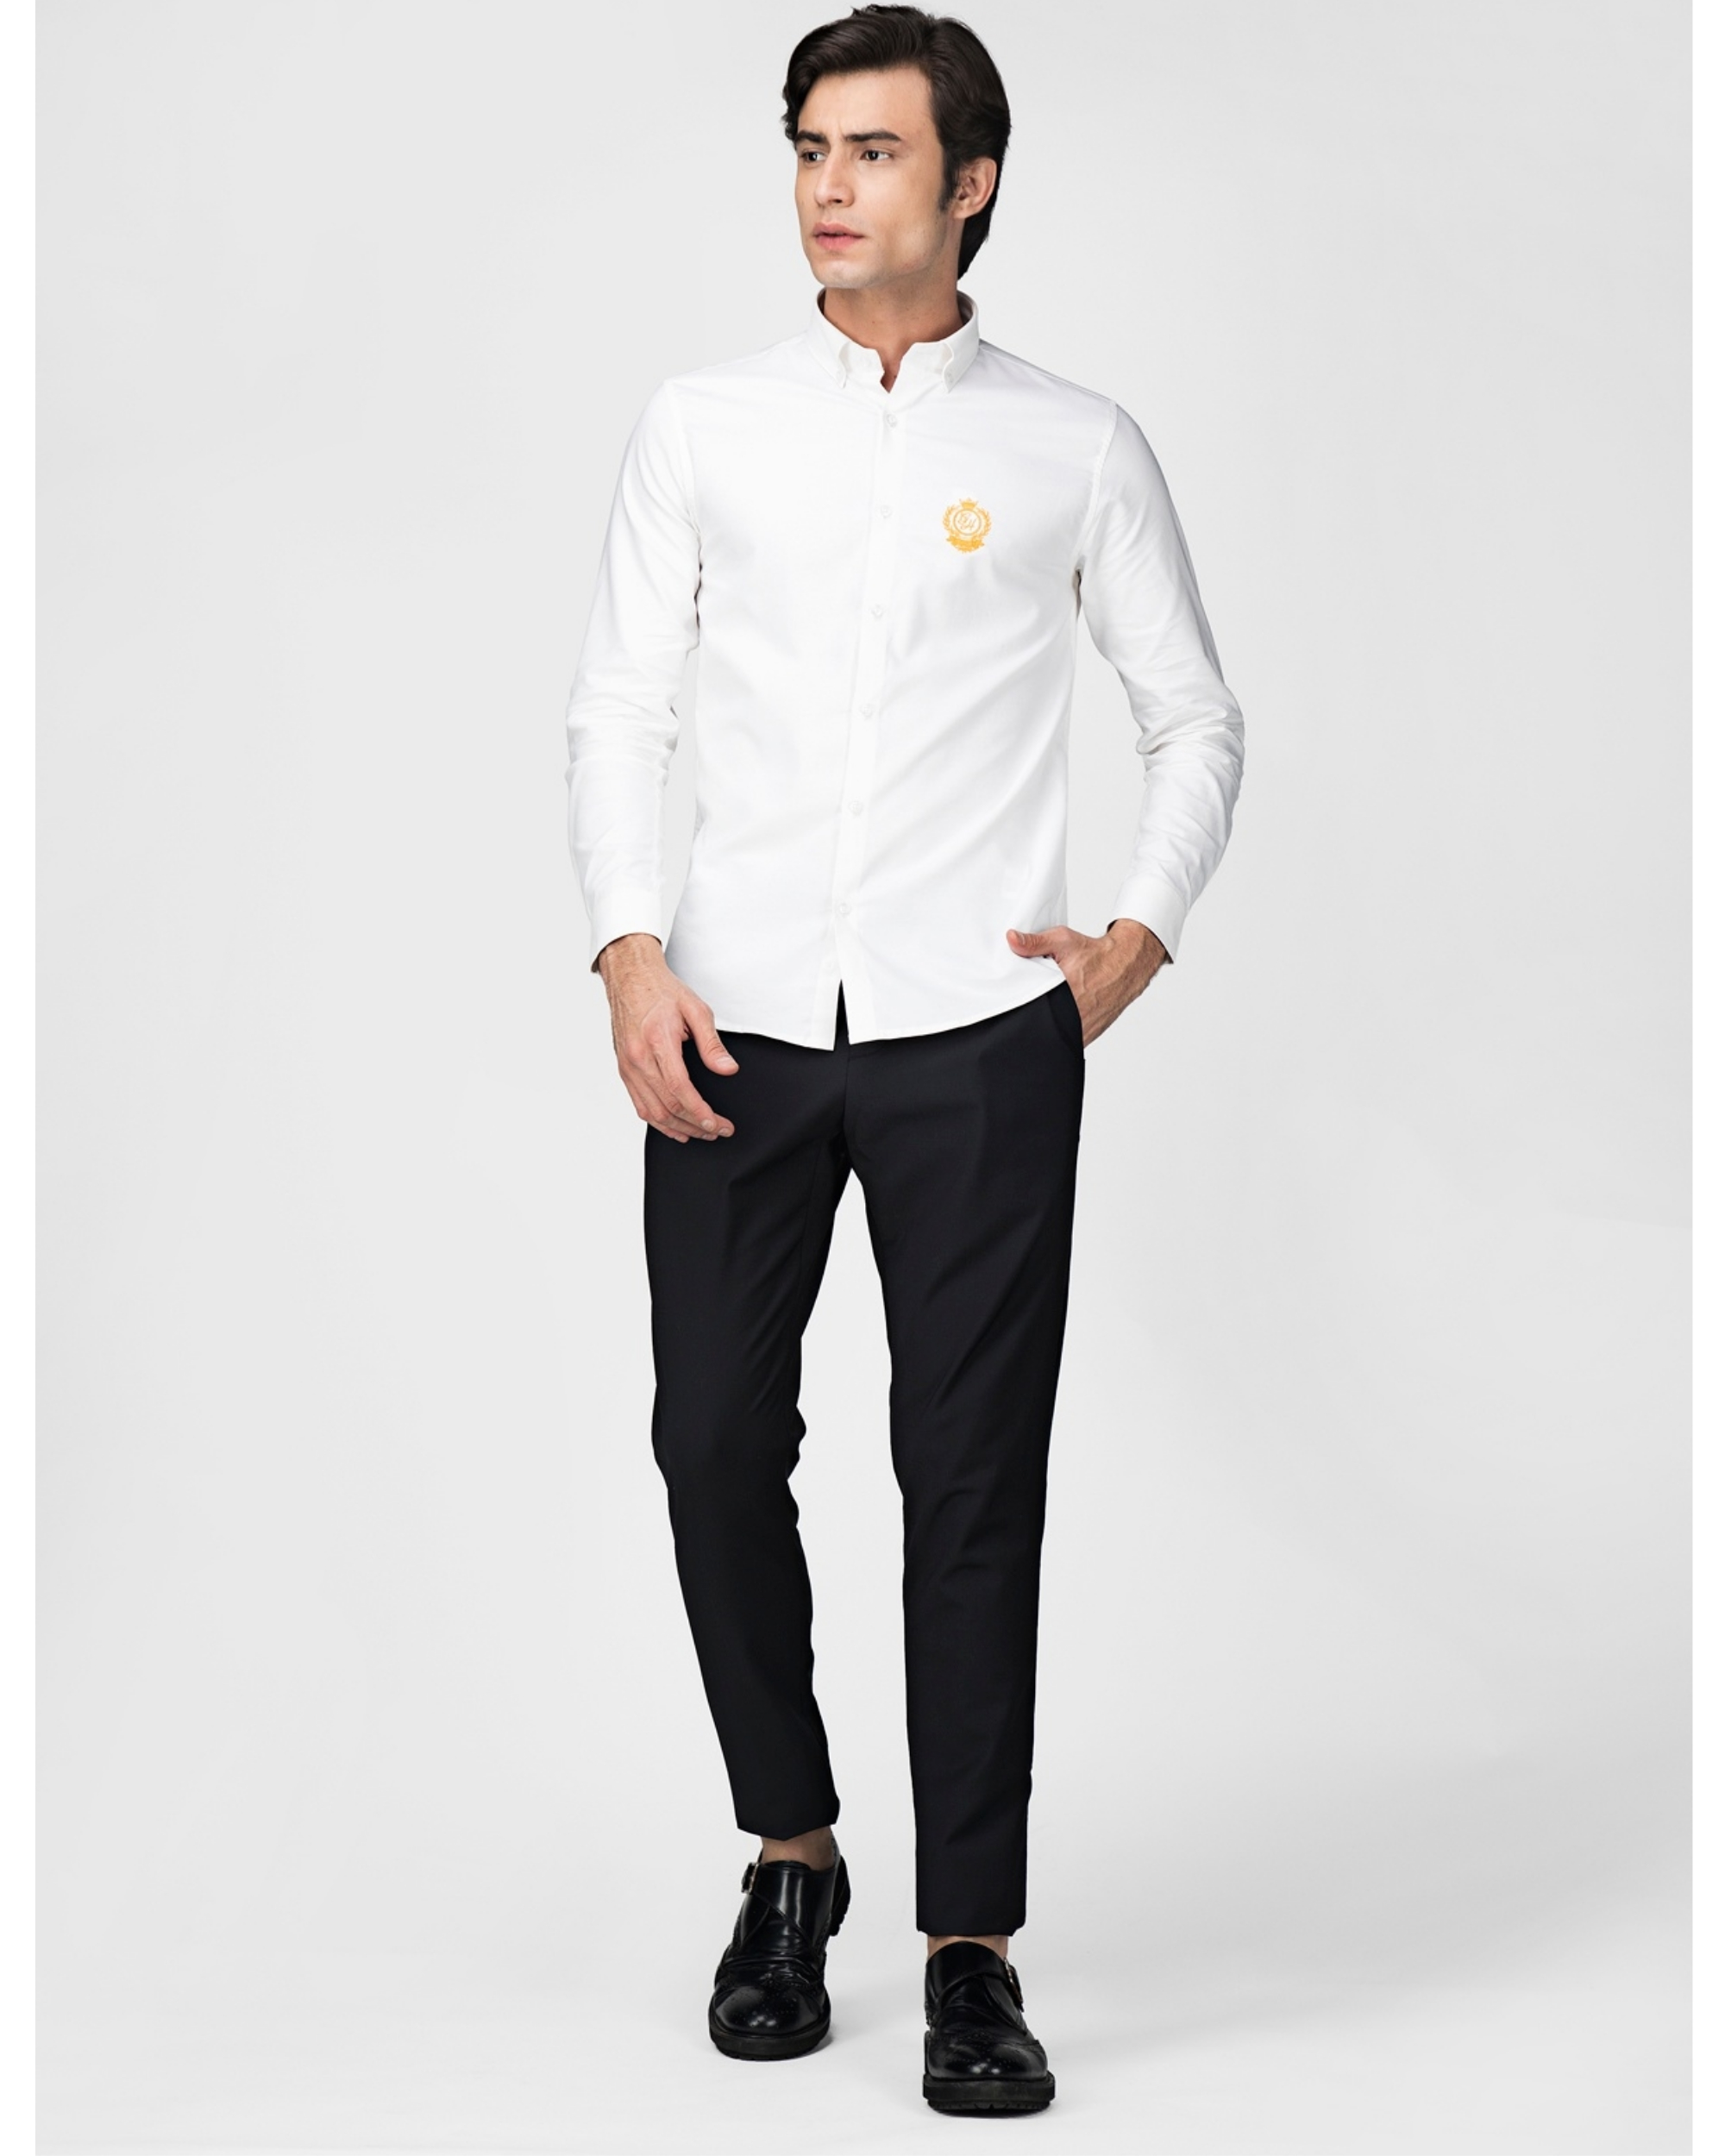 White oxford embroidered shirt